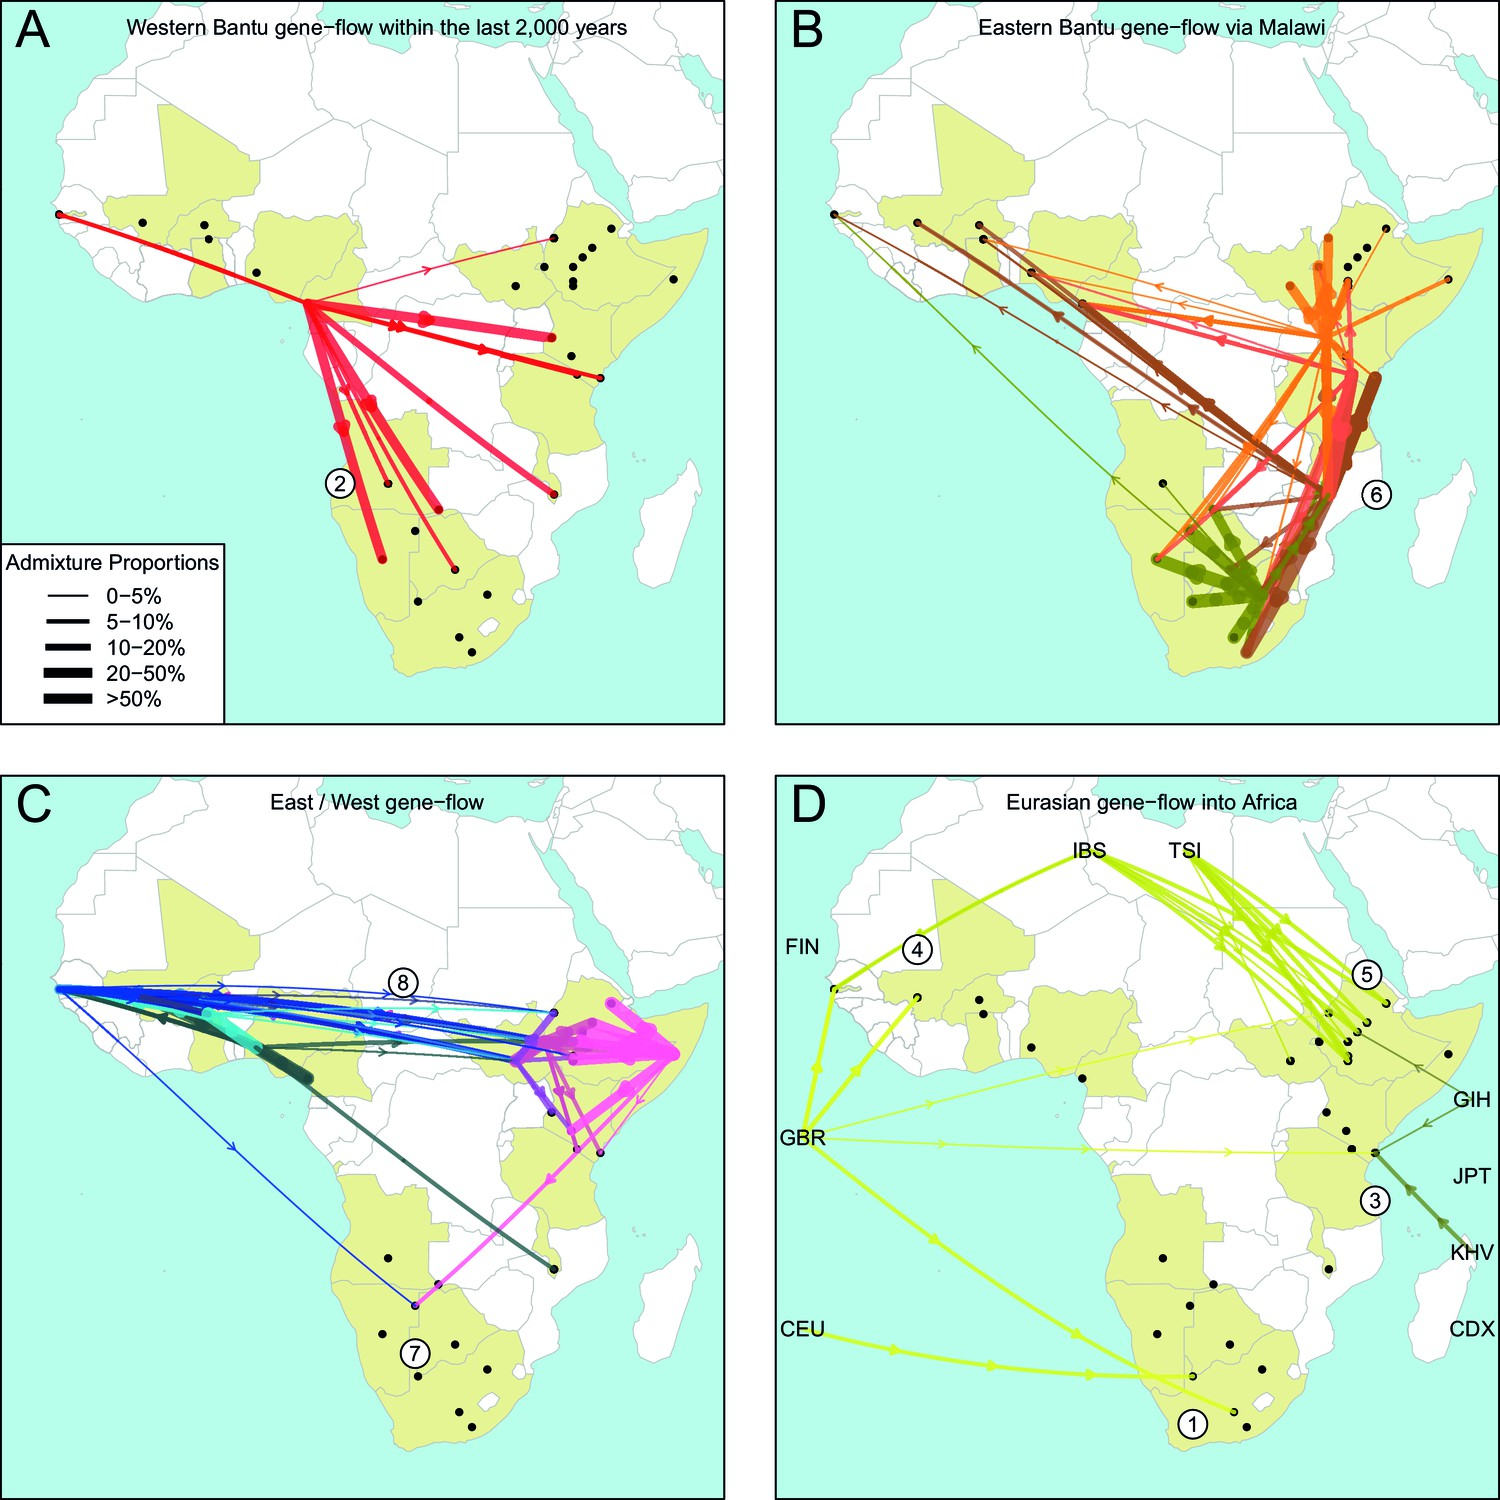 Admixture into and within sub-Saharan Africa | eLife